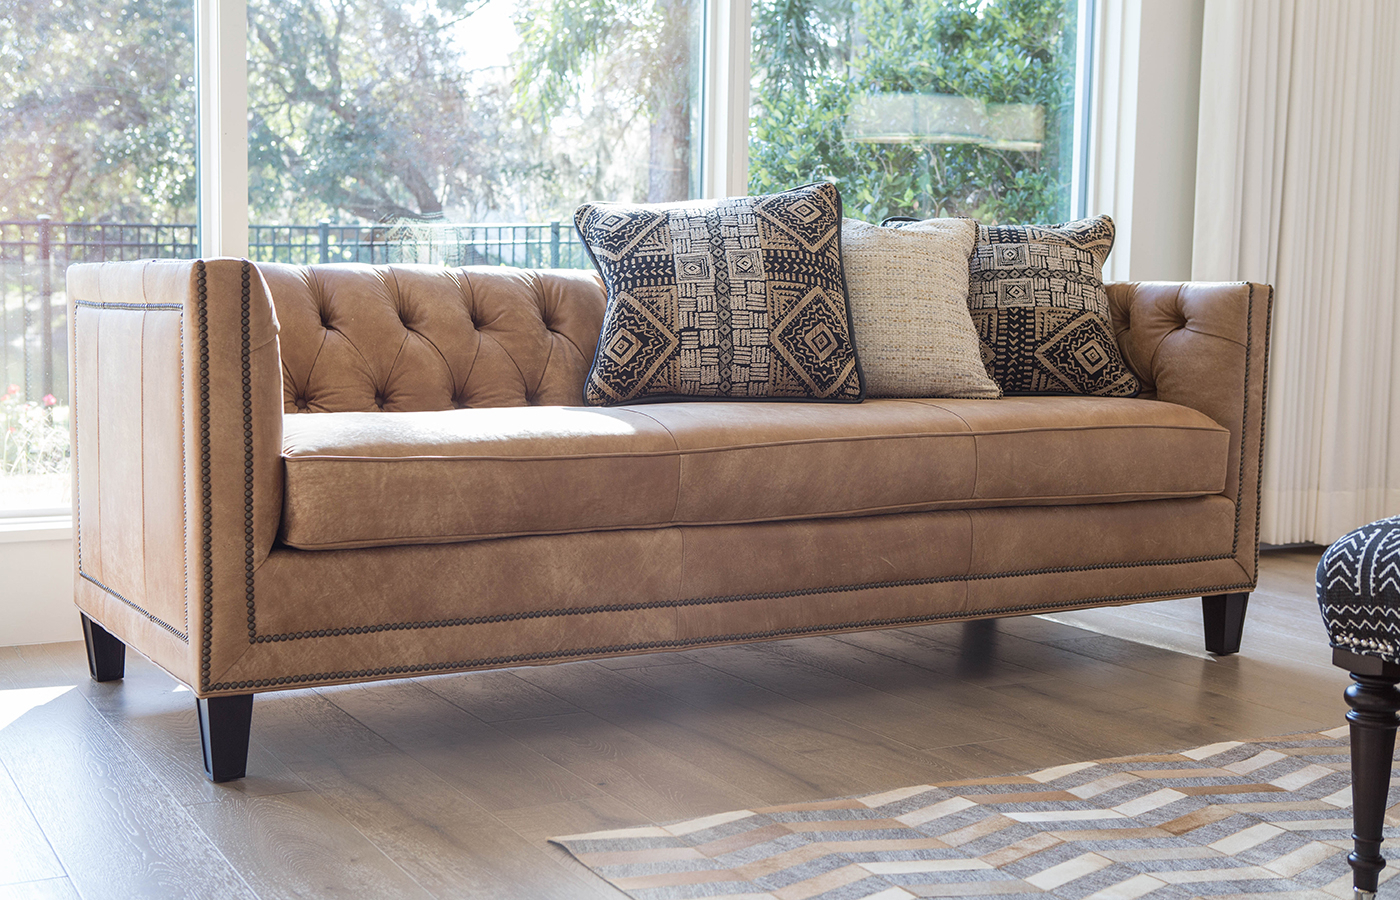 Latest Norwalk Sofa And Chairs Intended For Norwalk Furniture (View 11 of 20)